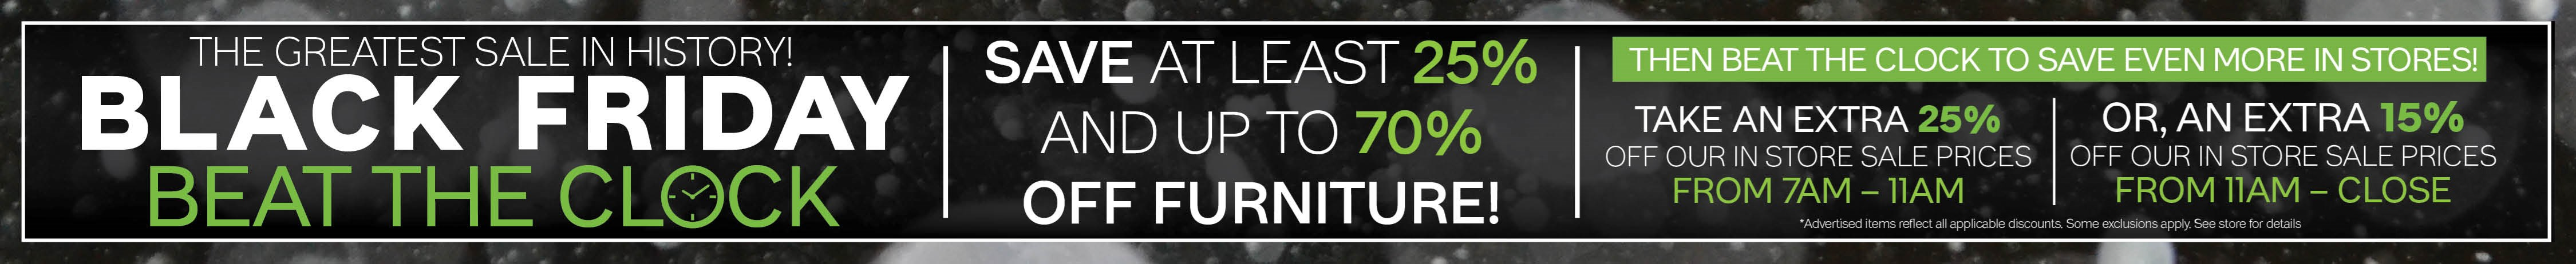 Furniture & ApplianceMart Black Friday Sale